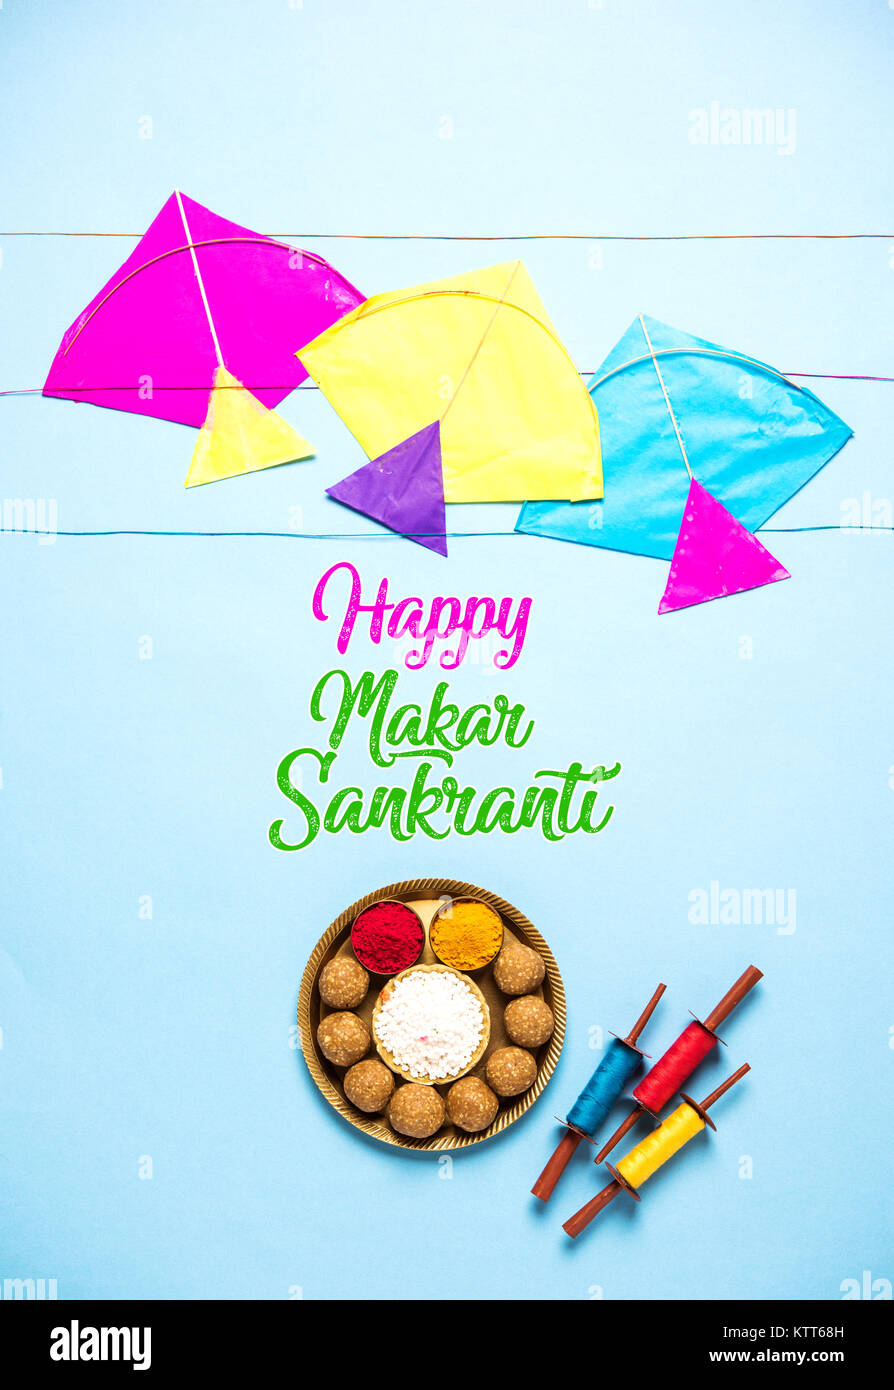 Happy makar sankranti greeting card tilgul or til ladoo in a bowl happy makar sankranti greeting card tilgul or til ladoo in a bowl or plate with haldi kumkum and flowers with fikri reelchakri spool with colourf m4hsunfo